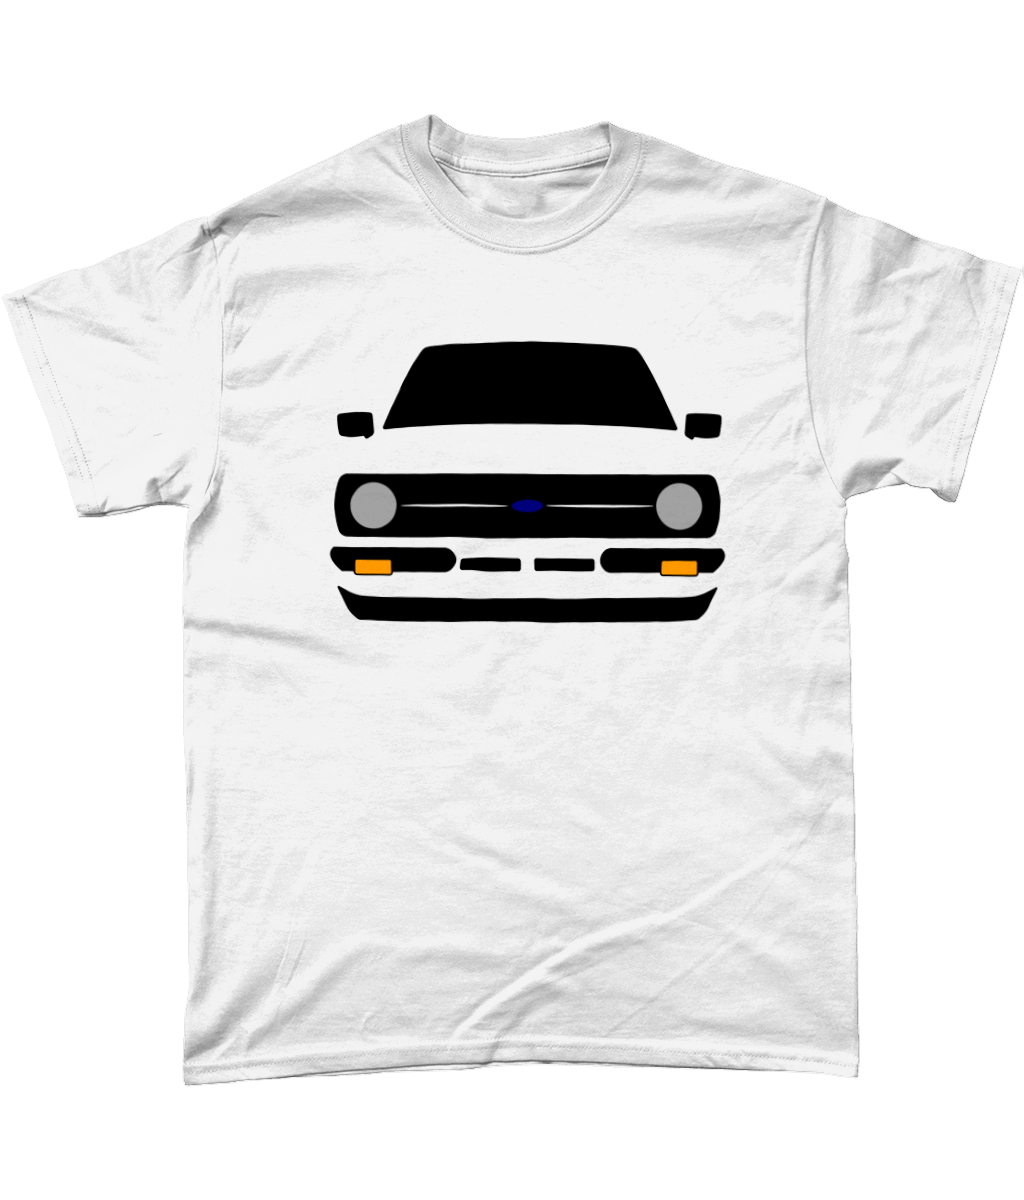 Ford Escort MK2 RS1800 T-Shirt 🎨 - Miles & Myles